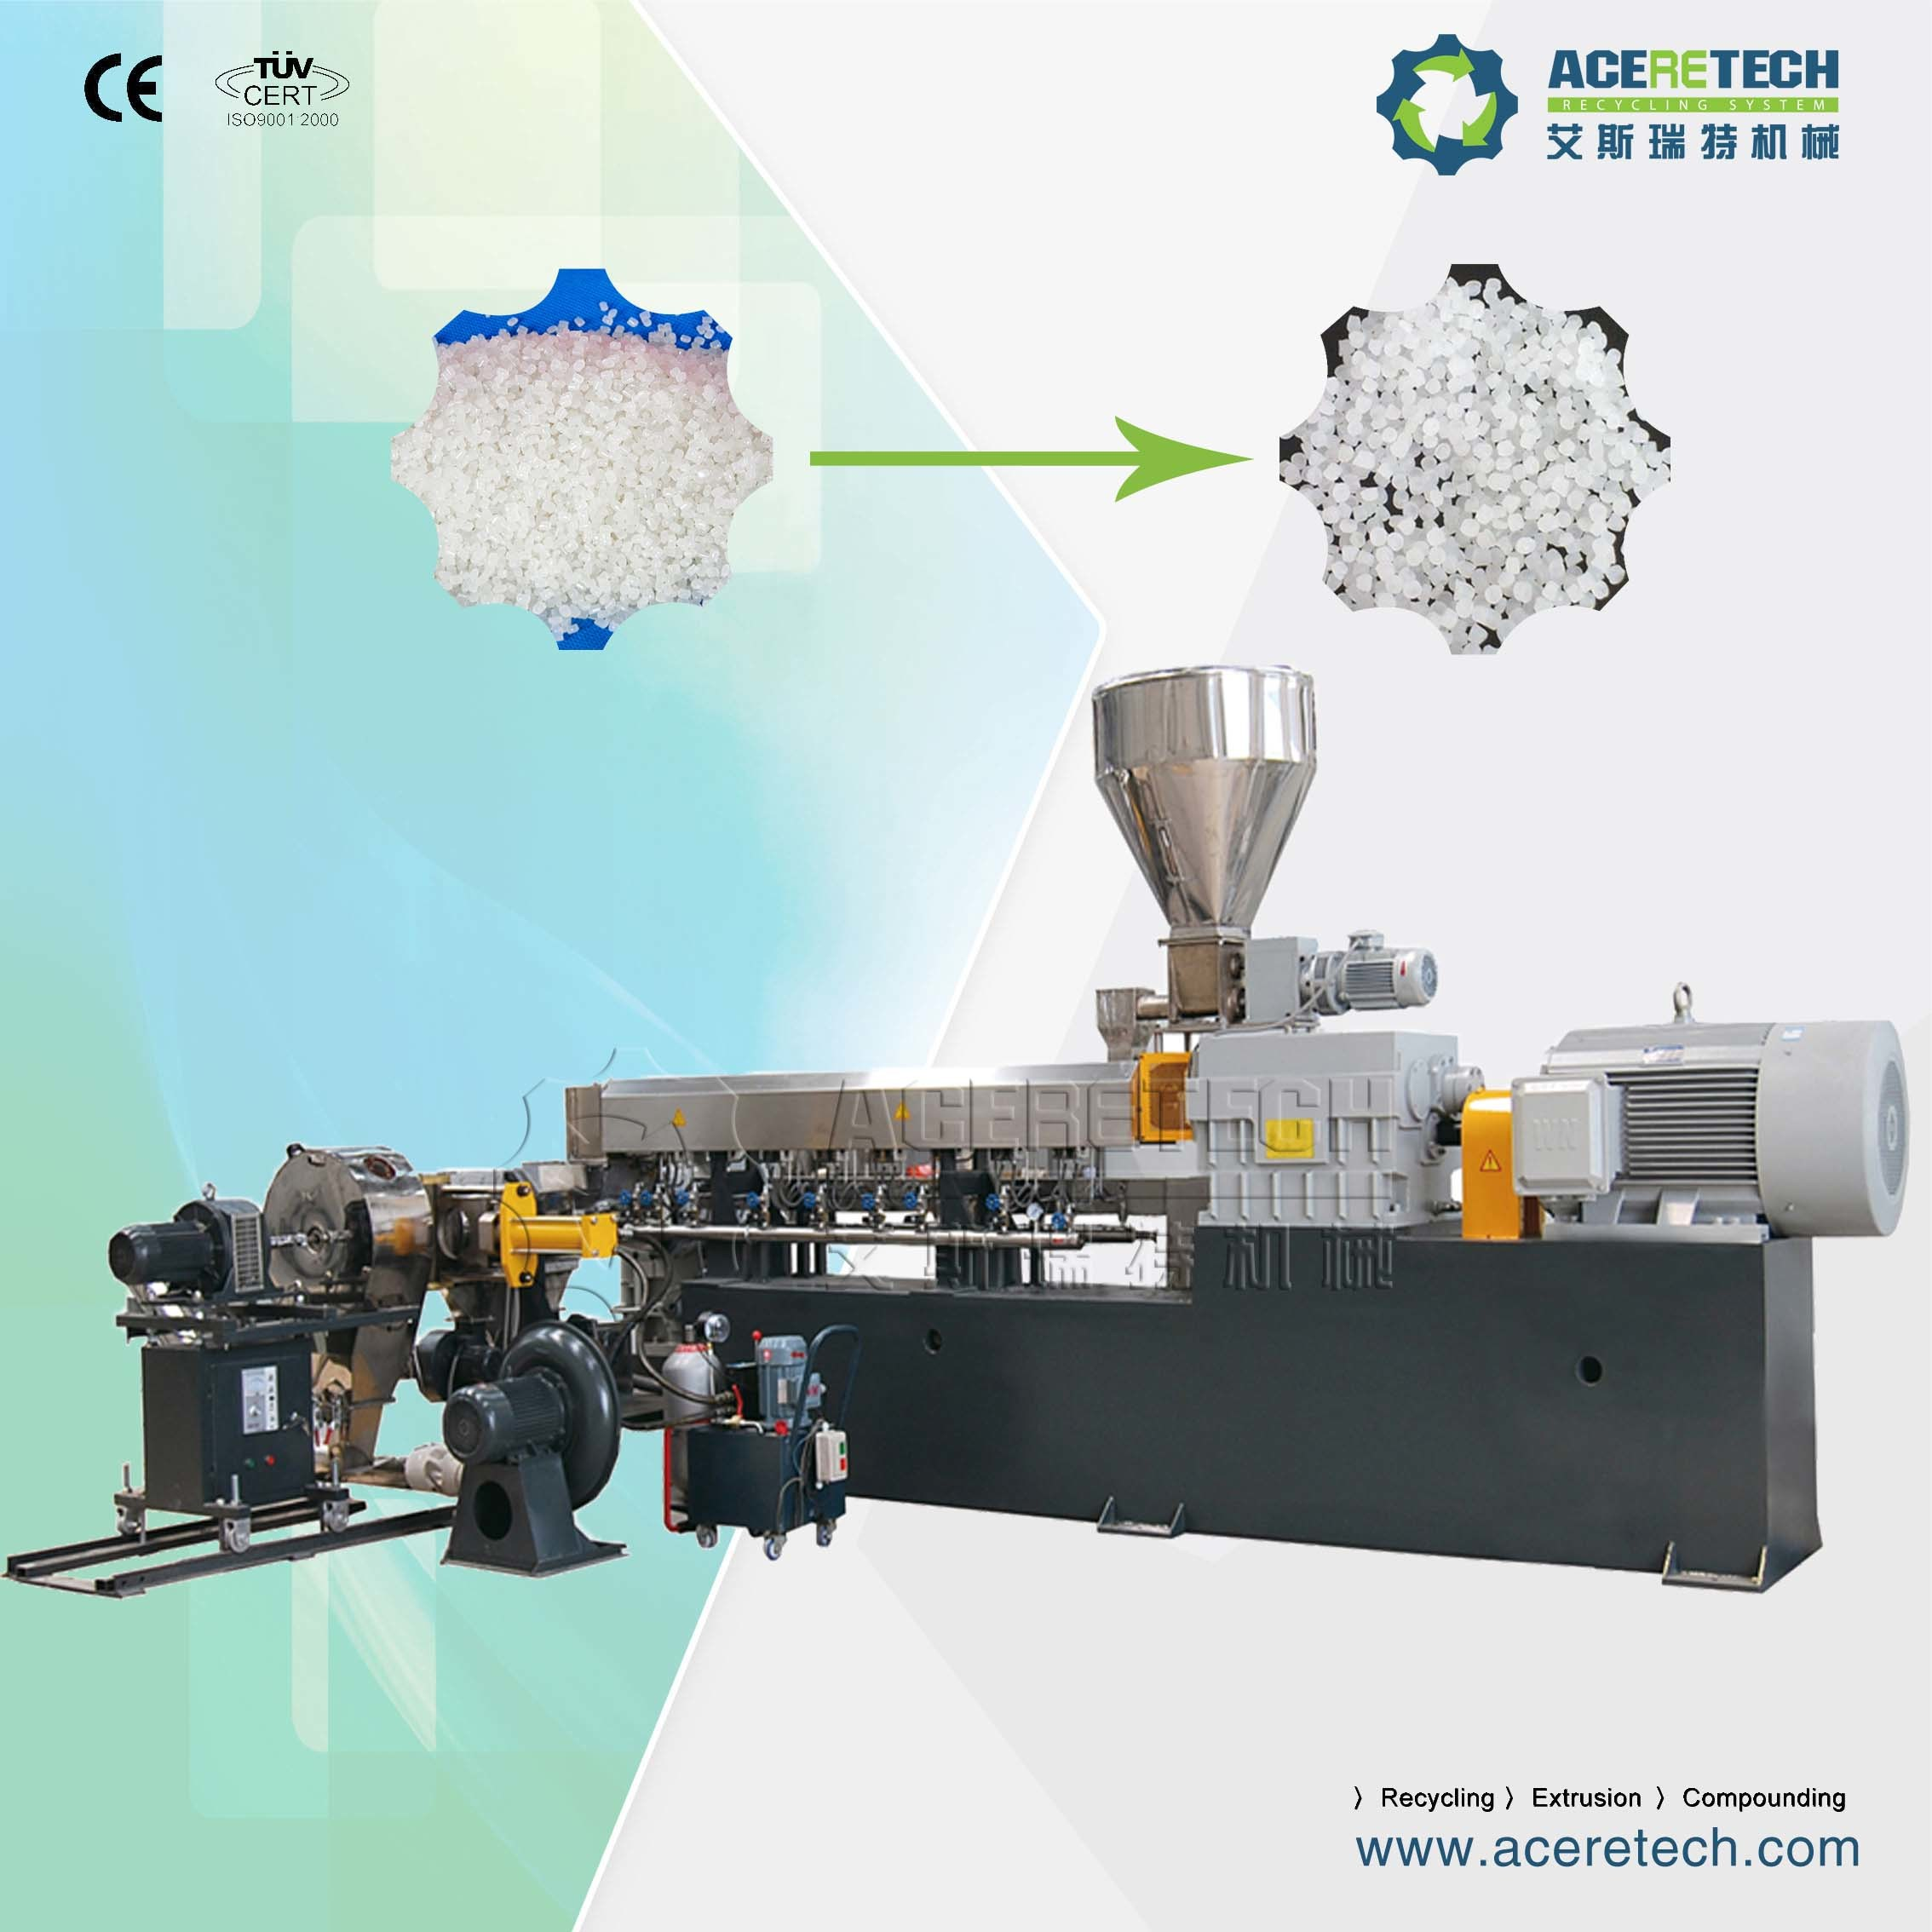 Twin Screw Extruder for Making Chemical Cross Linking Cable Material